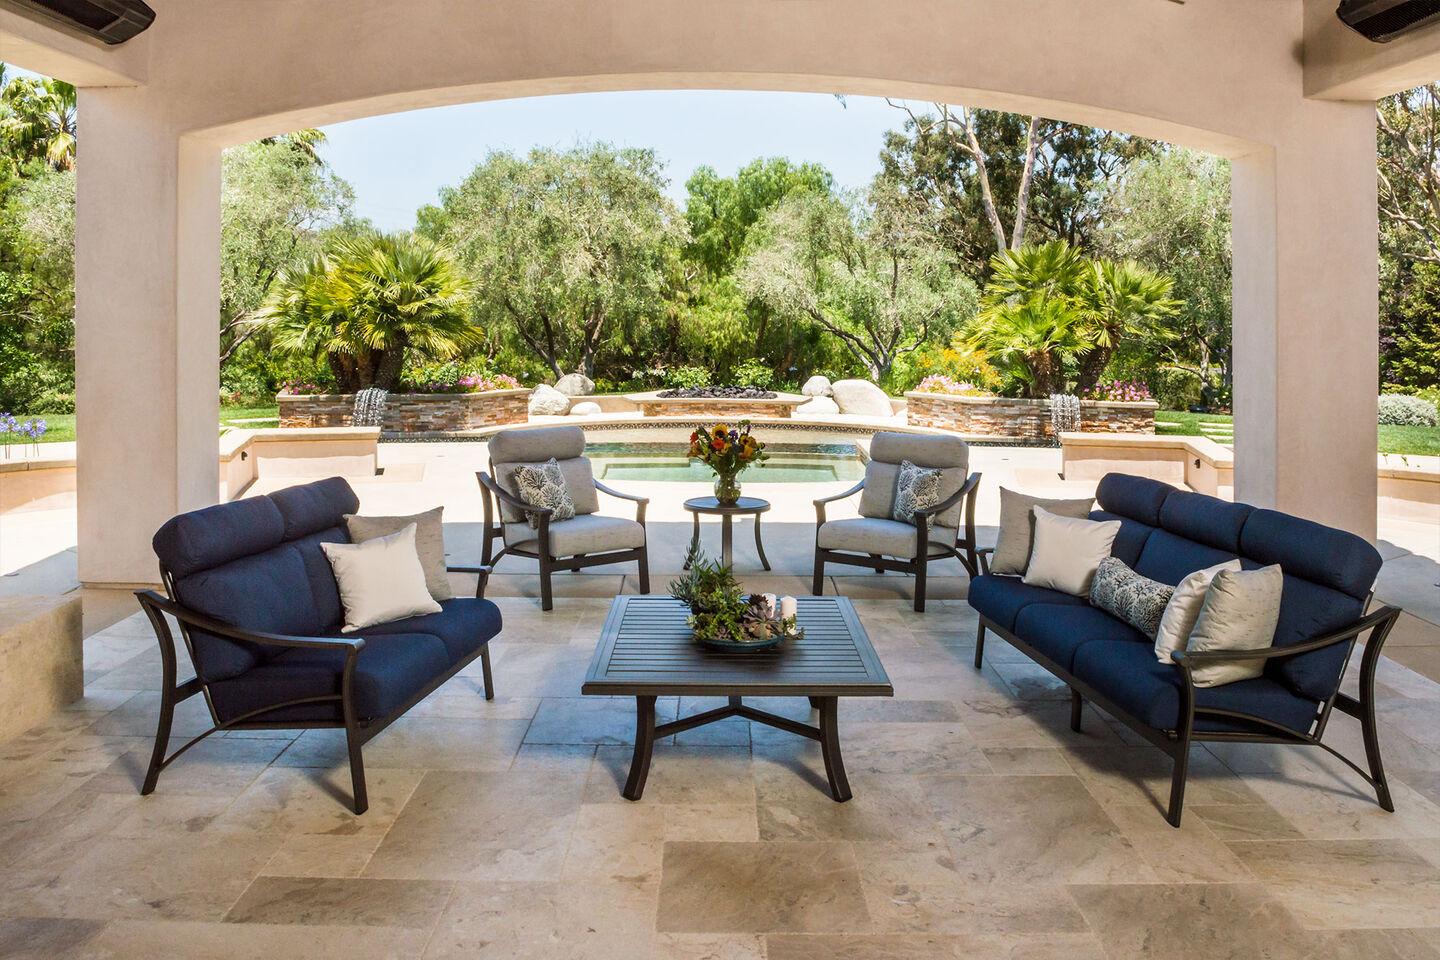 retirement home with commercial outdoor lounge furniture